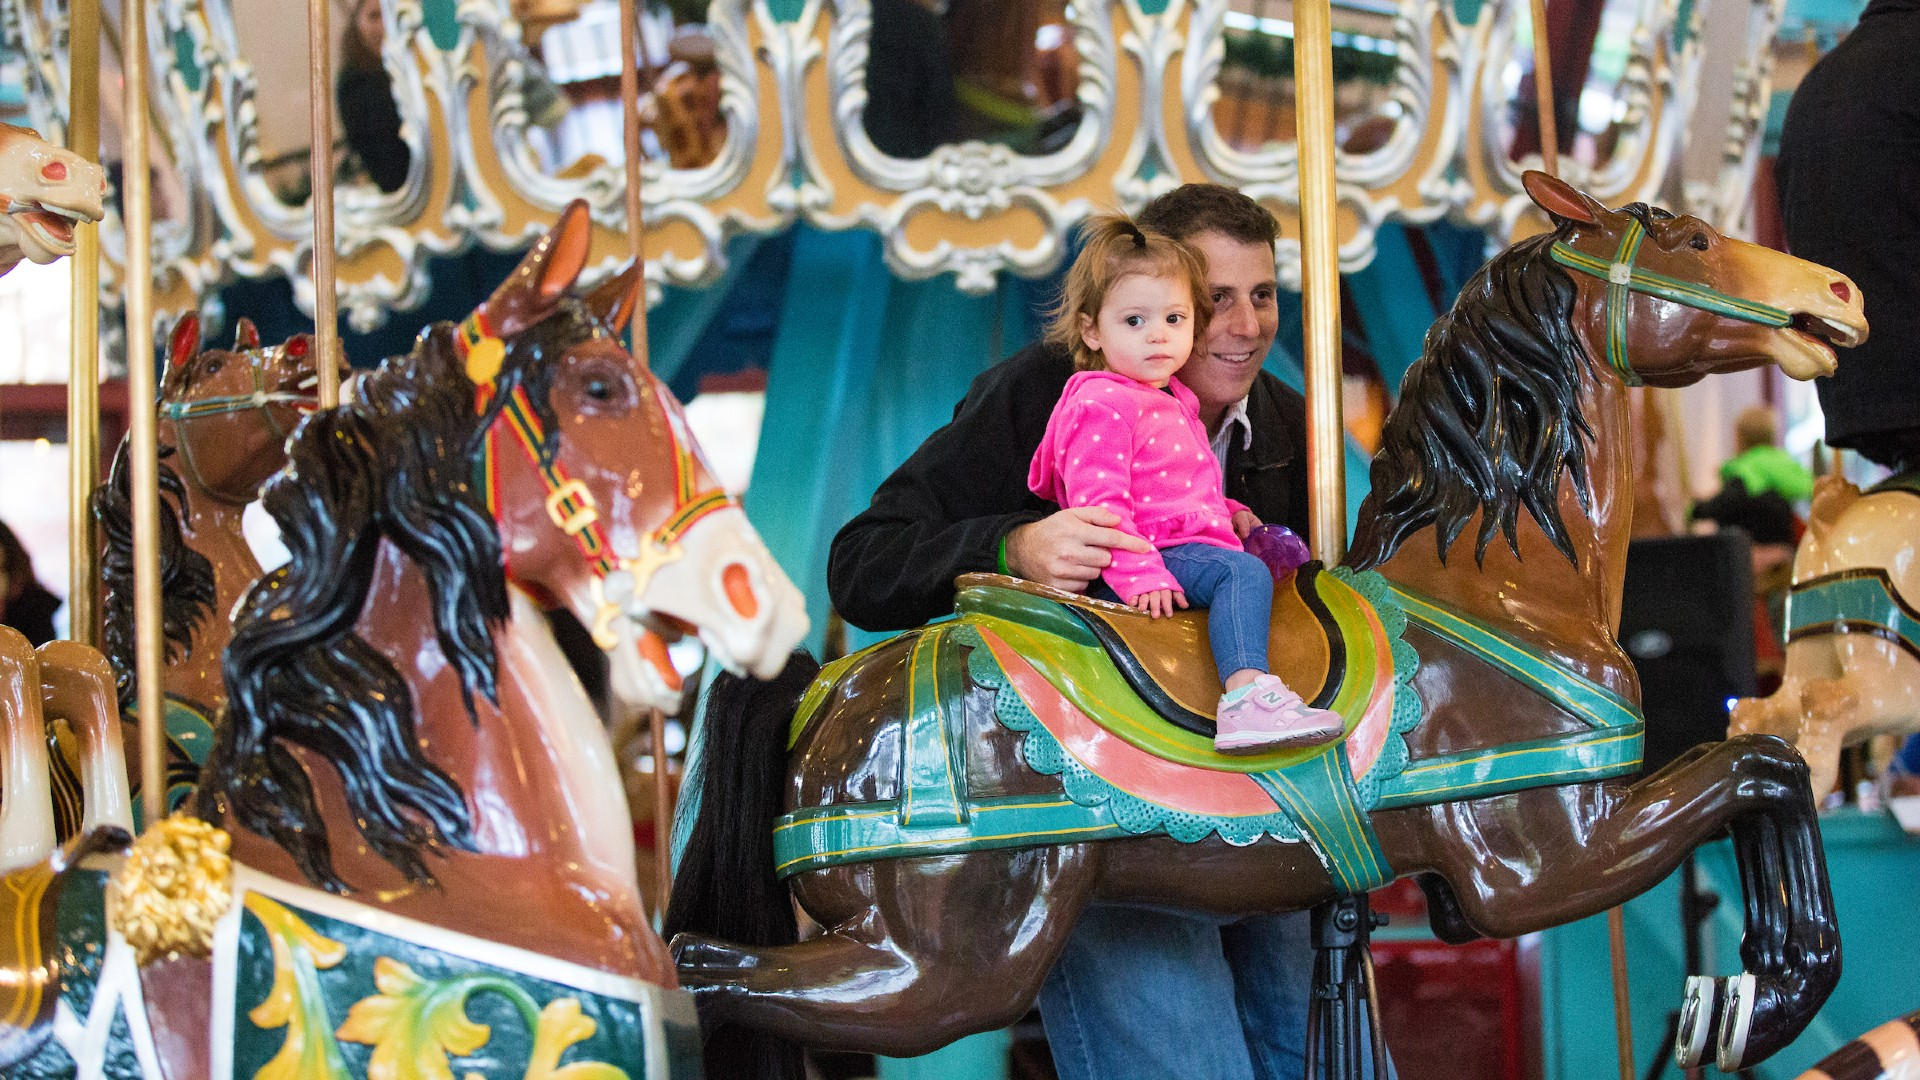 Toddler girl riding a pony on the carousel at Pullen Park